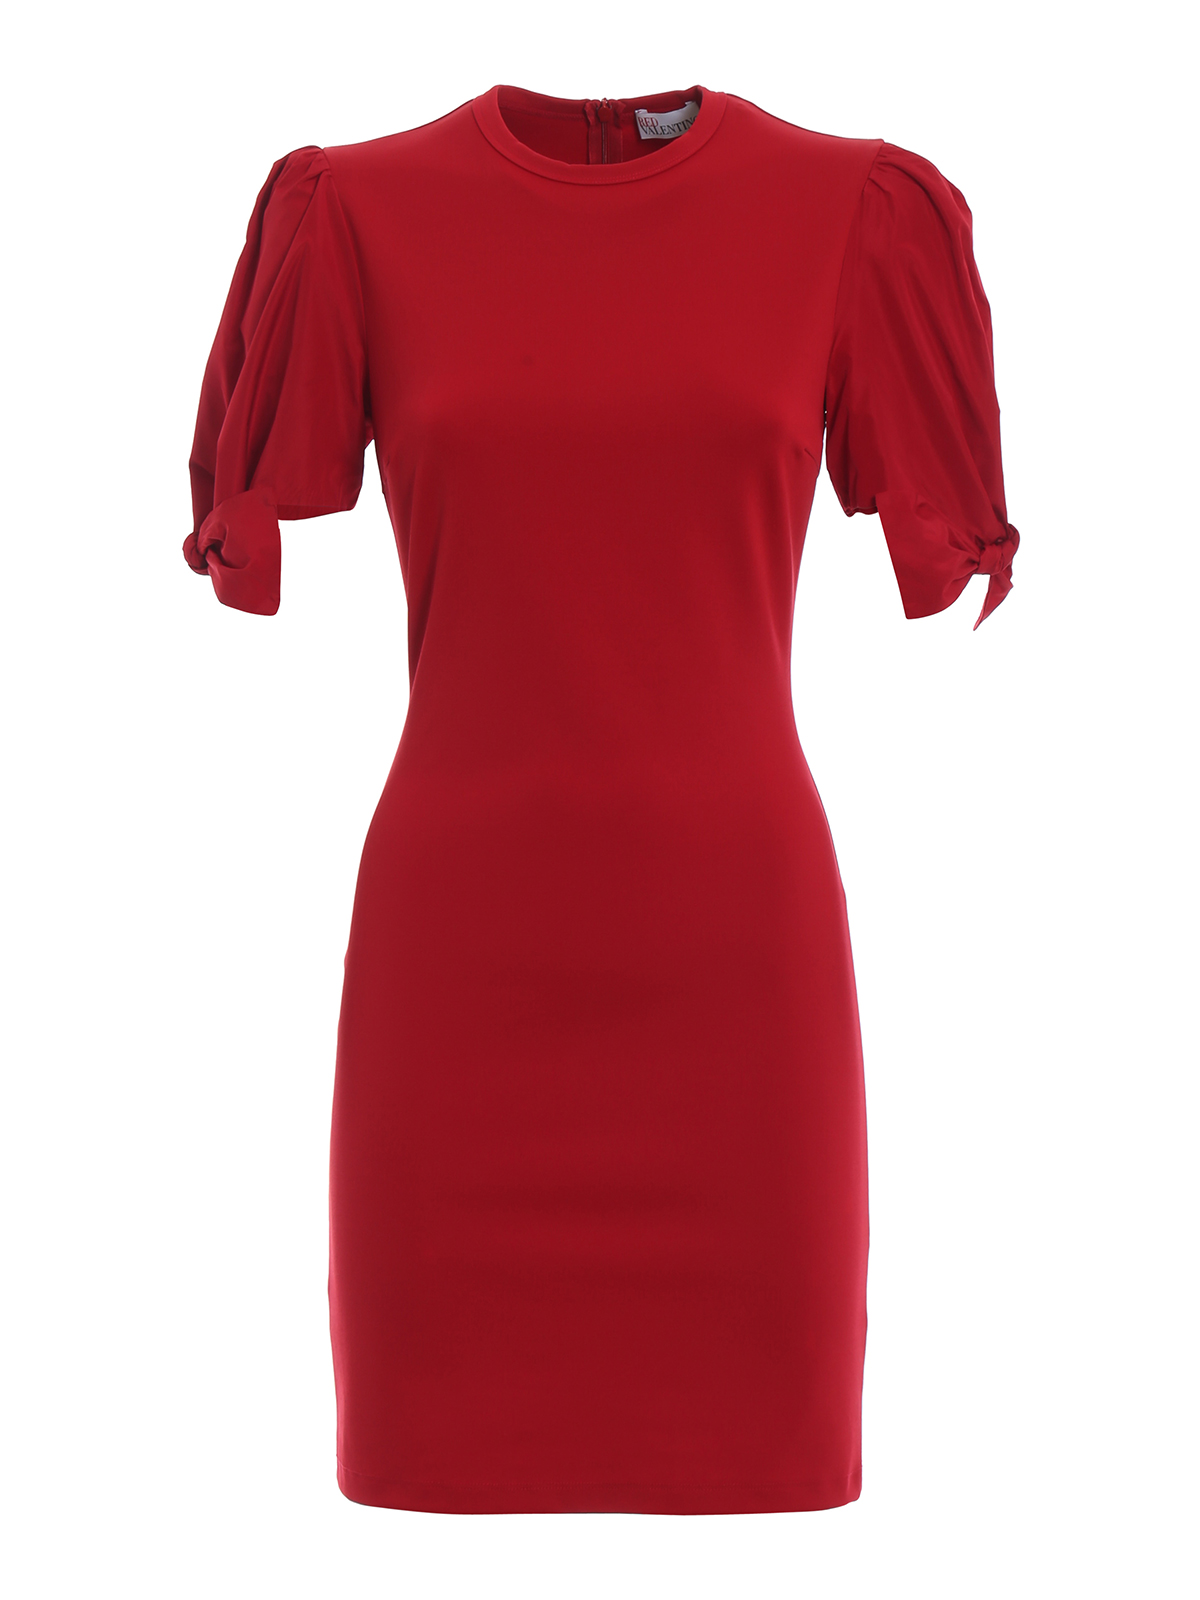 red shift dress with satin puff sleeves by valentino red